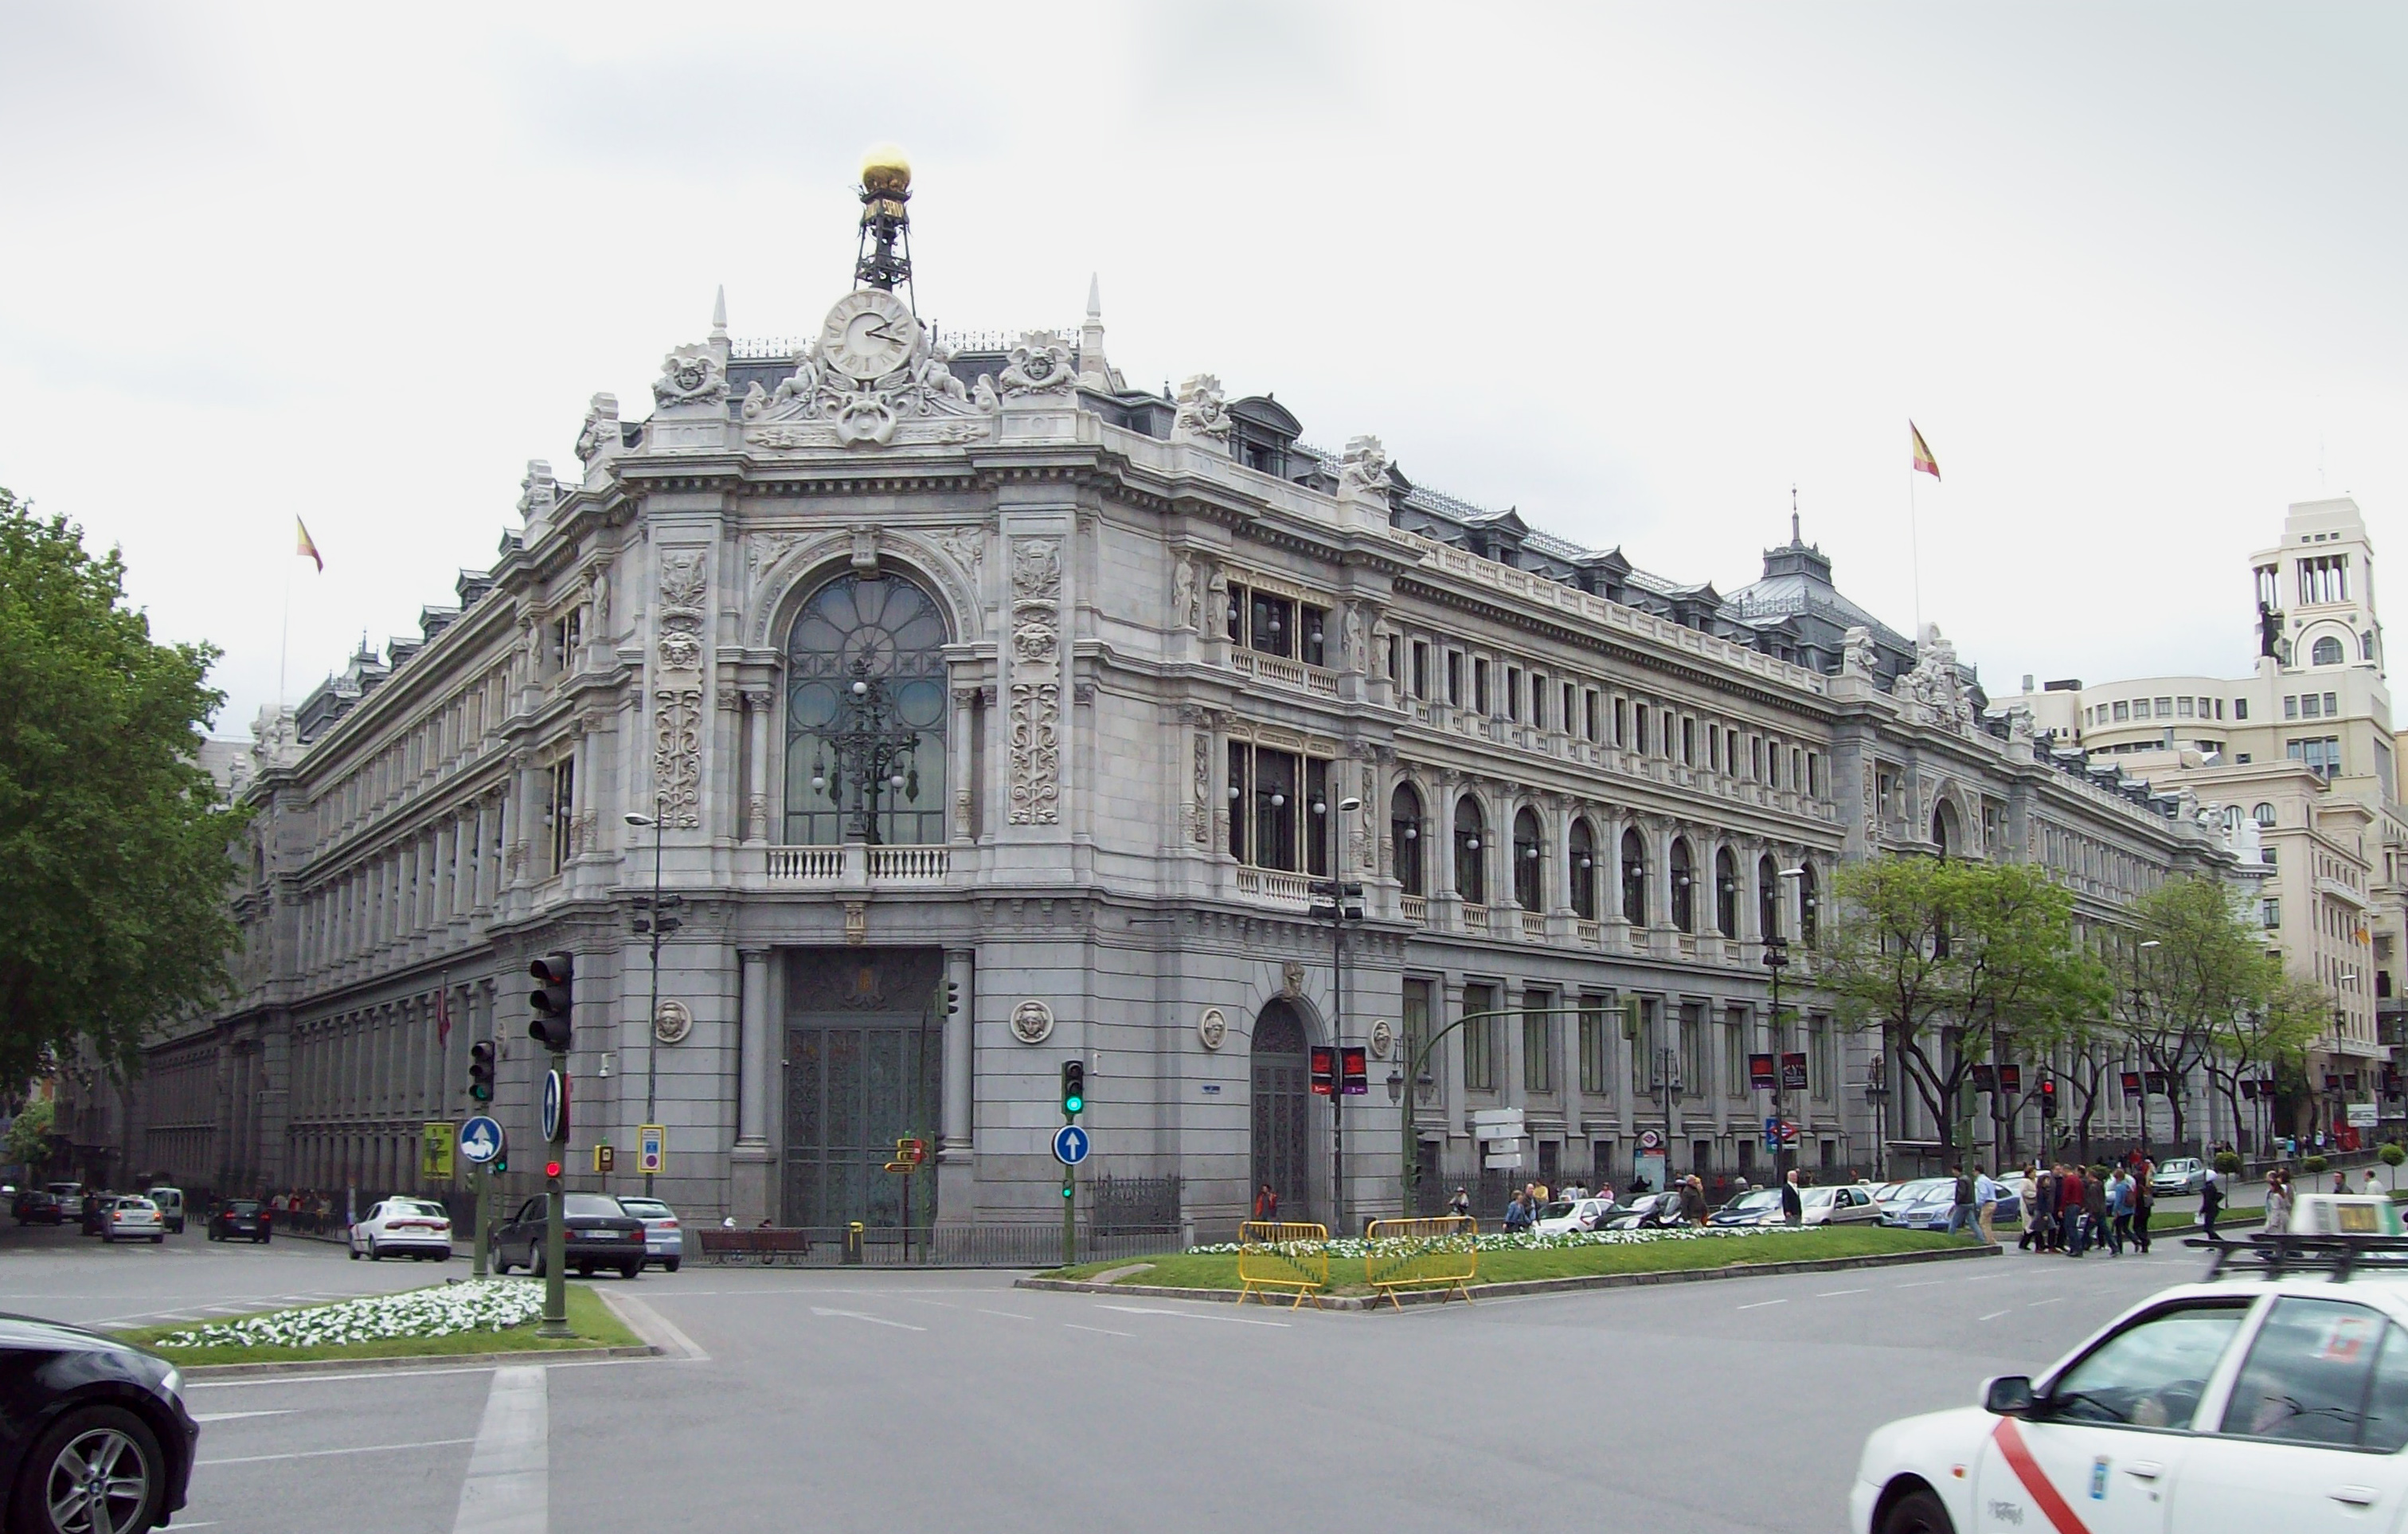 View of the Bank of Spain headquarters (Madrid) from Plaza de Cibeles (square).